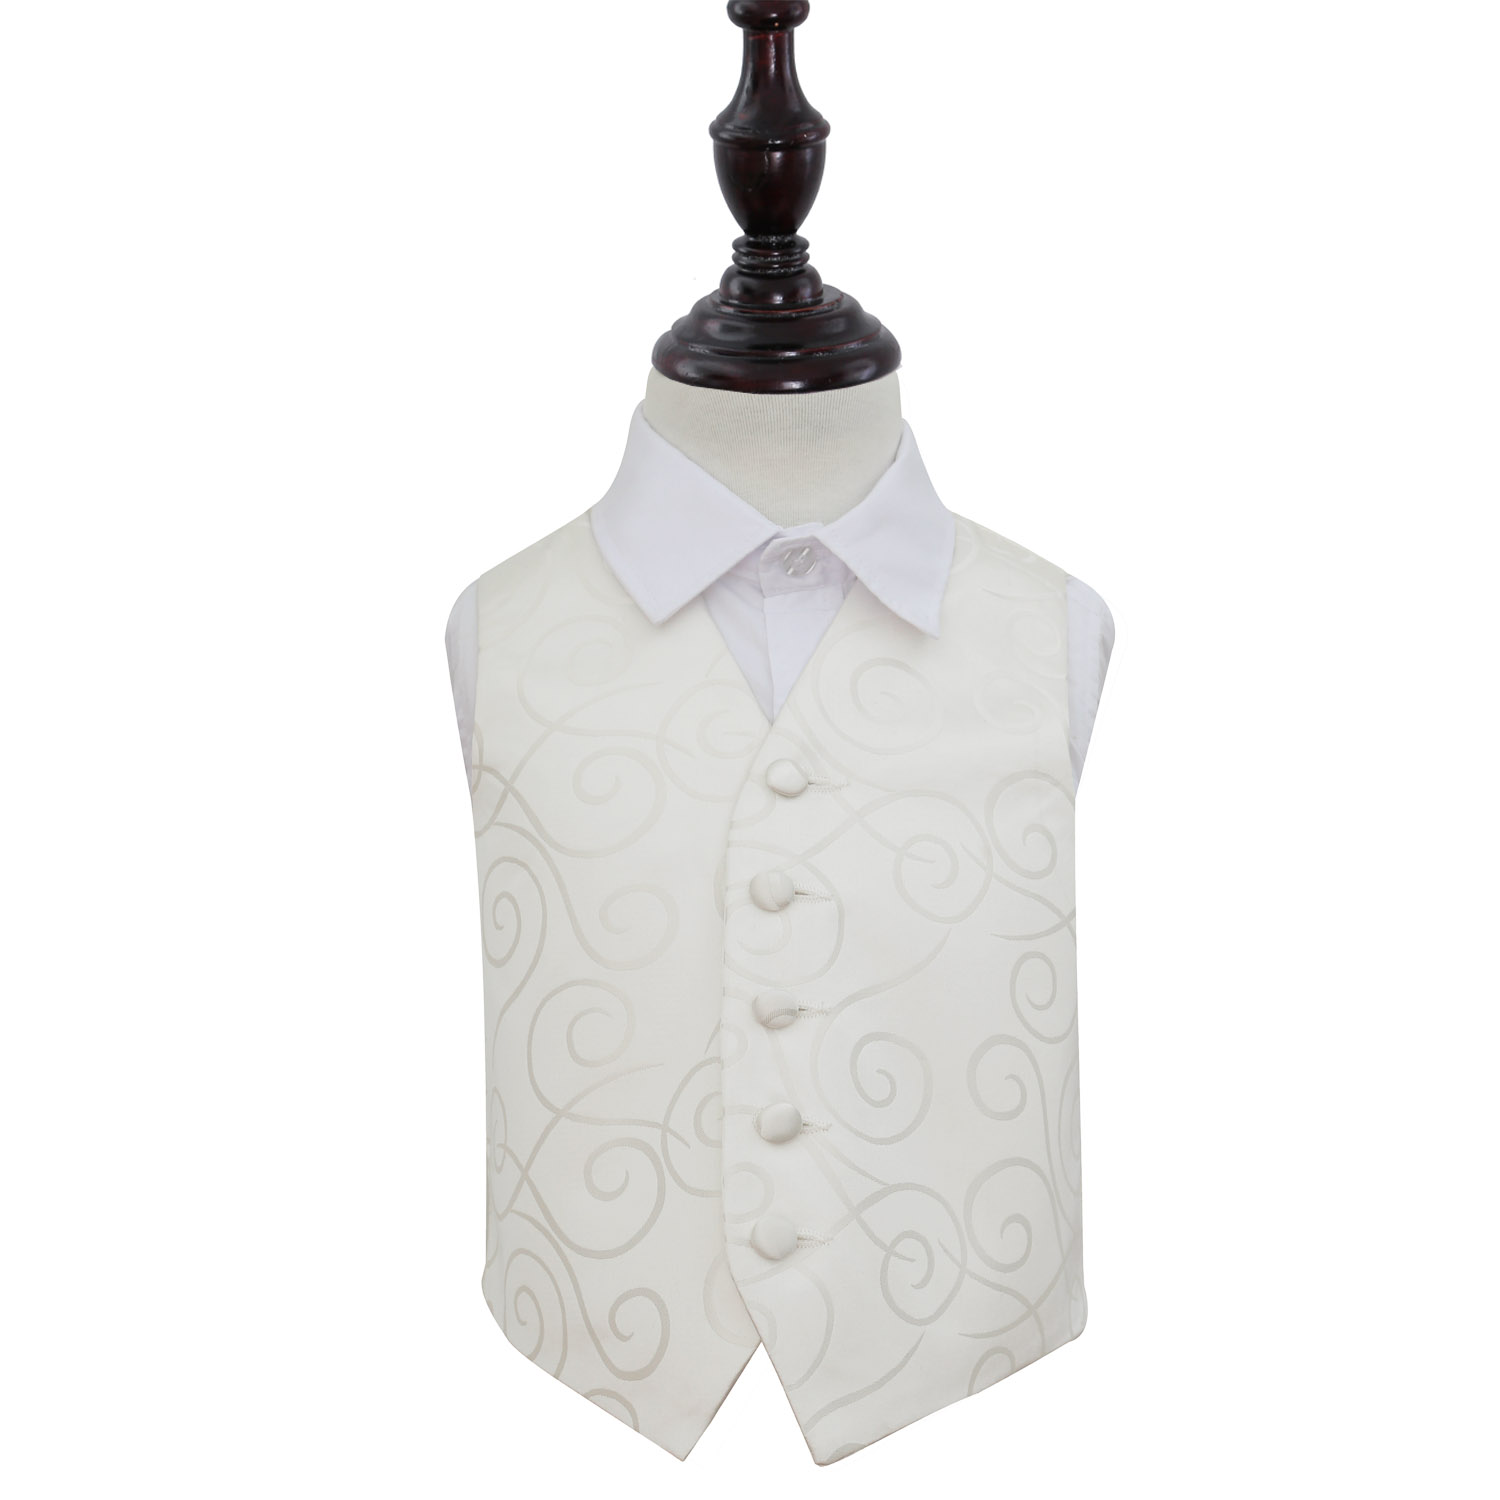 You searched for: boys wedding waistcoat! Etsy is the home to thousands of handmade, vintage, and one-of-a-kind products and gifts related to your search. No matter what you're looking for or where you are in the world, our global marketplace of sellers can help you .